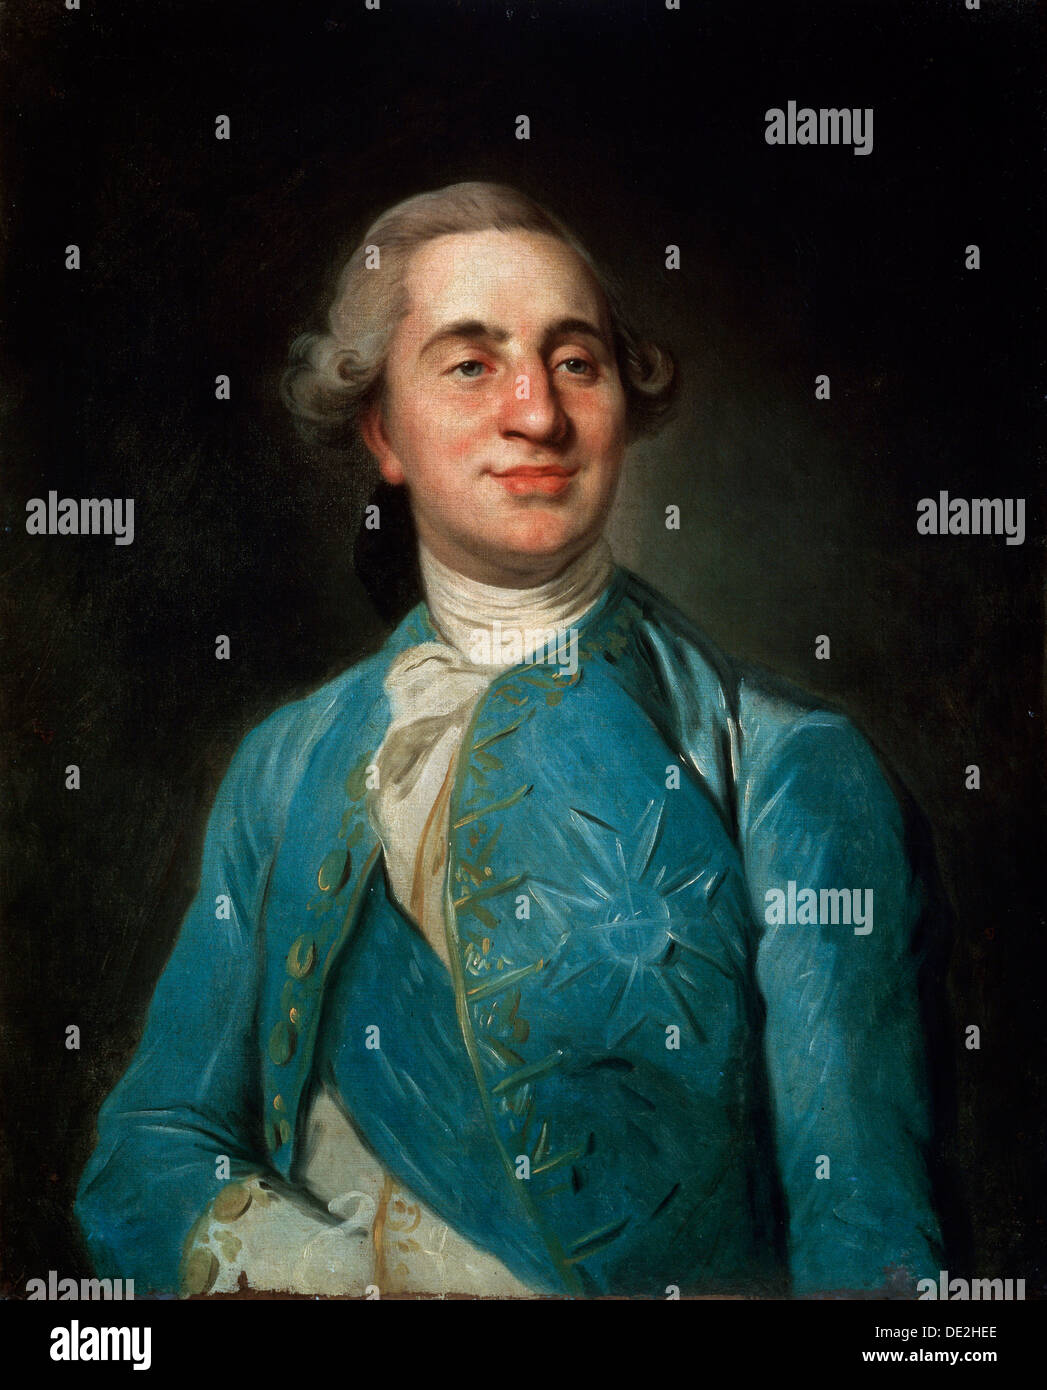 'Portrait of the King Louis XVI', 1770s. Artist: Joseph Siffred Duplessis - Stock Image